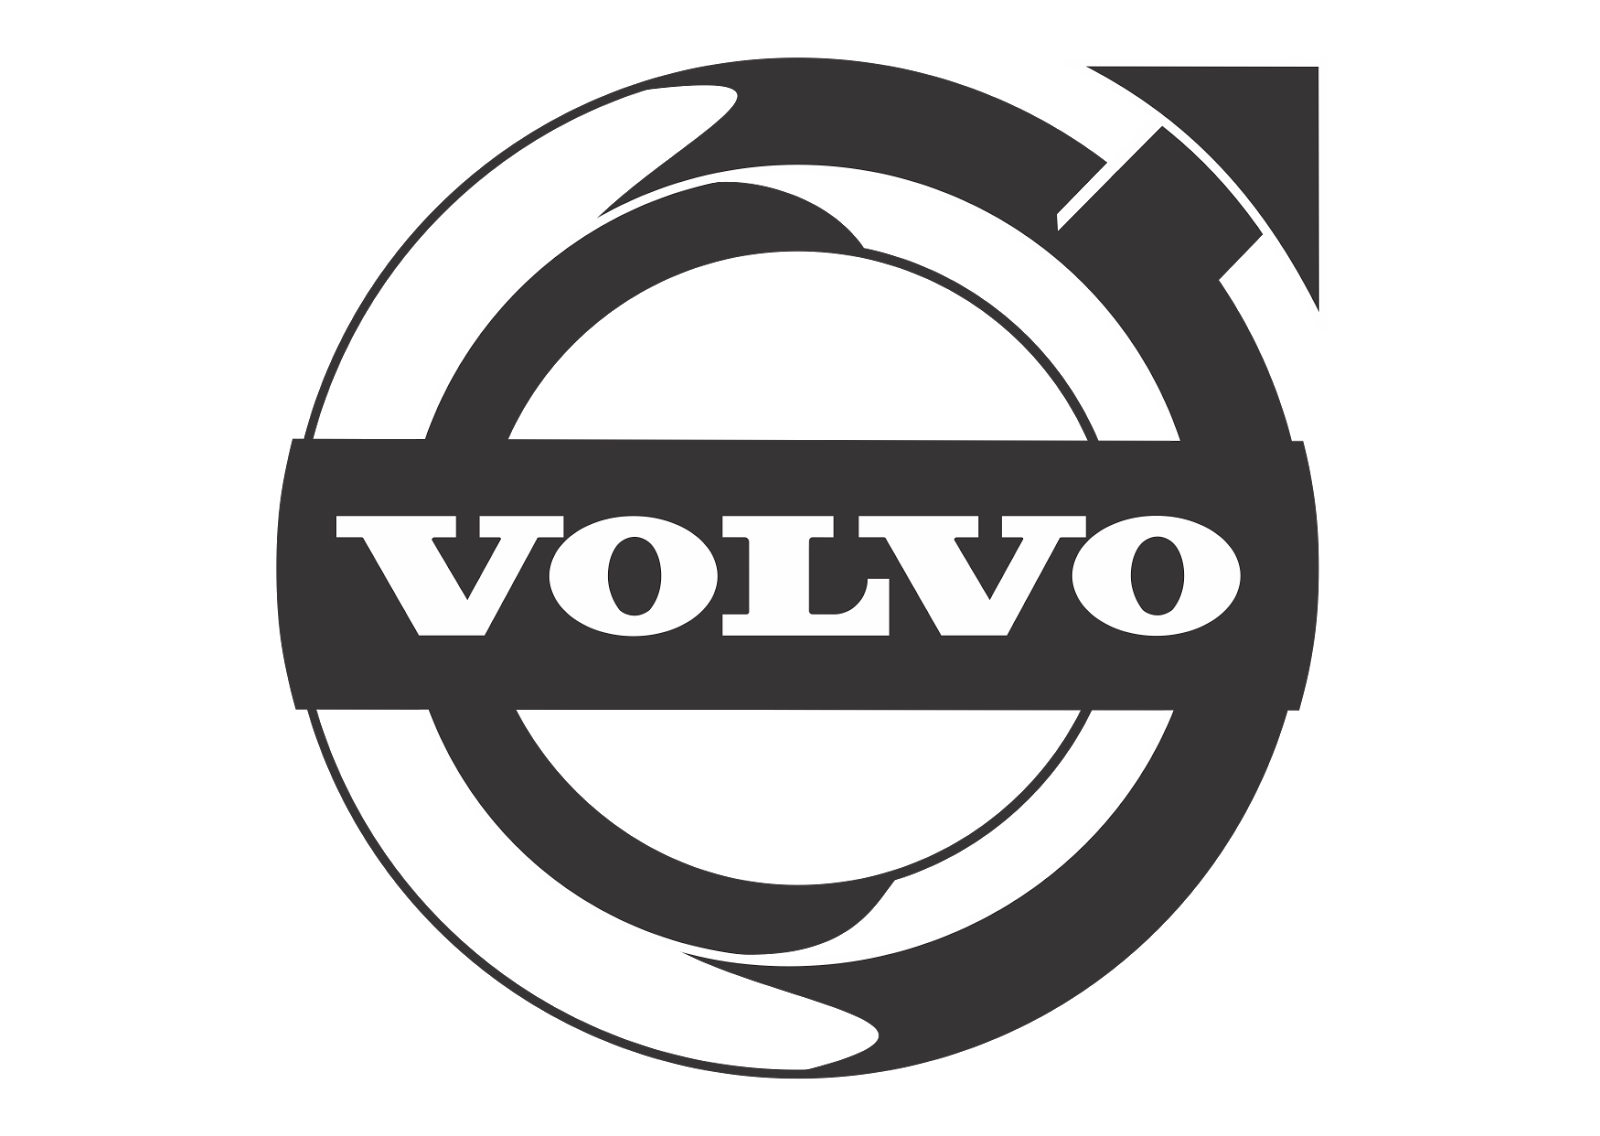 volvo black white logo branded logos pinterest volvo. Black Bedroom Furniture Sets. Home Design Ideas